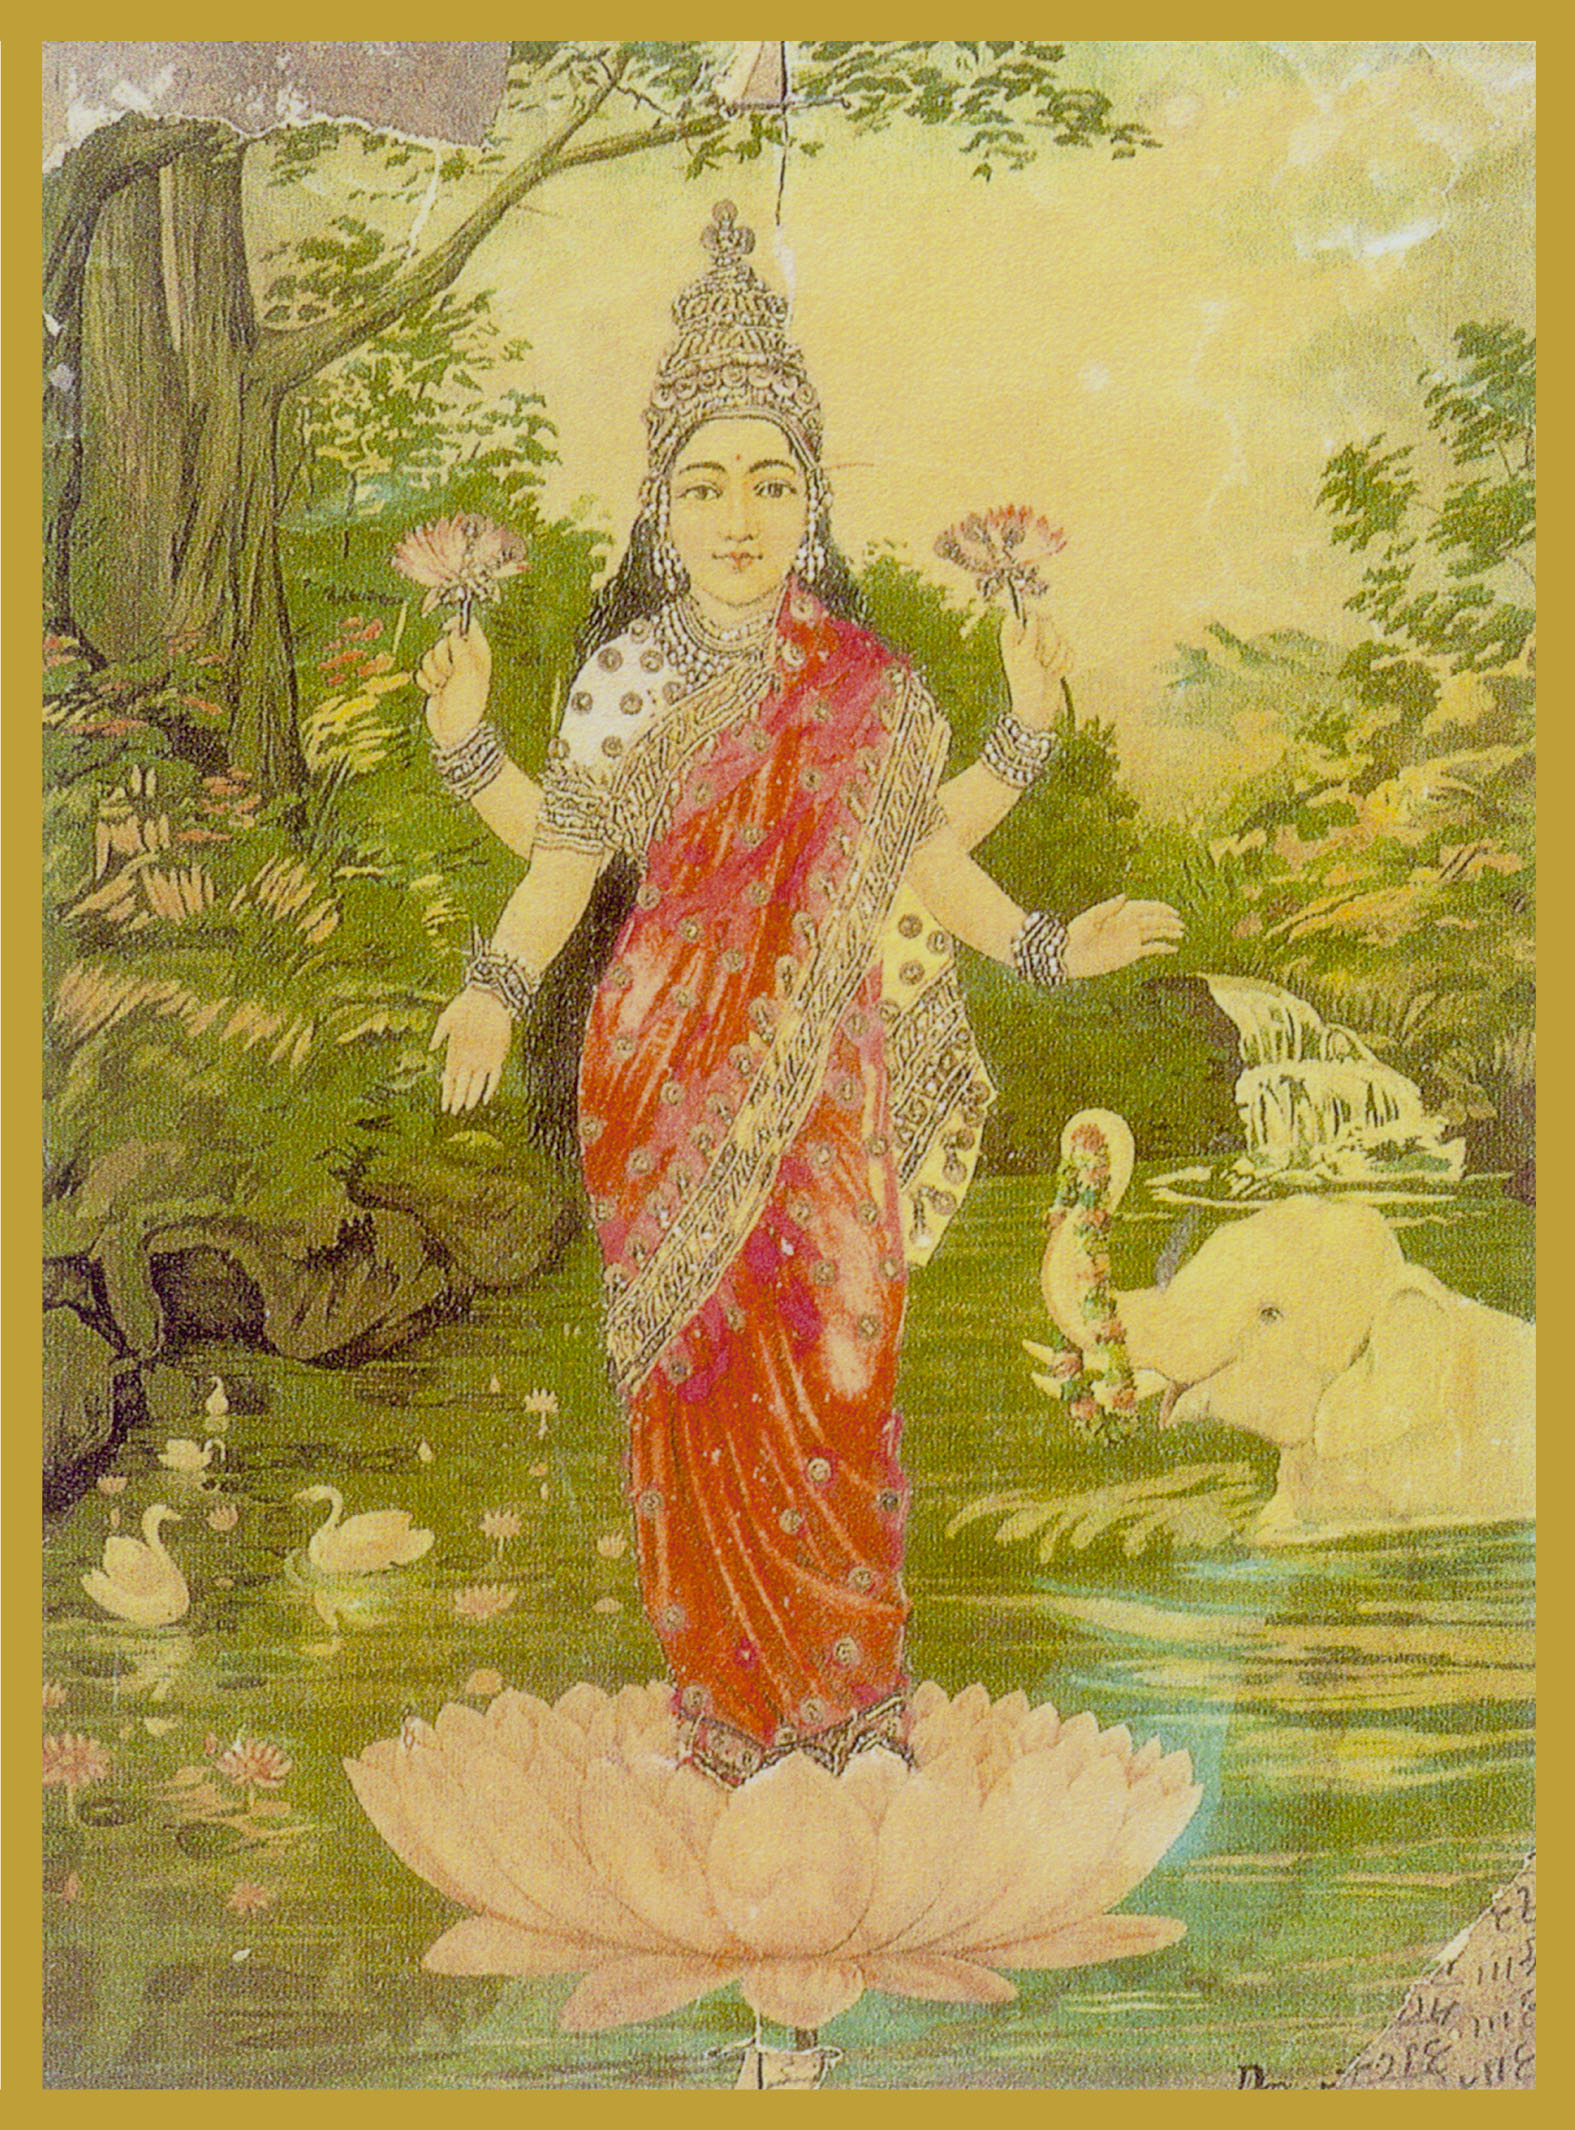 LAK-EL - LAKSHMIGoddess of Love, Beauty and ProsperityLakshmi is the consort of Lord Vishnu and is the feminine aspect of The Preserver. Lakshmi is enchantingly beautiful and is the goddess of Fortune. She maintains harmony, joy and fullness in the universe.